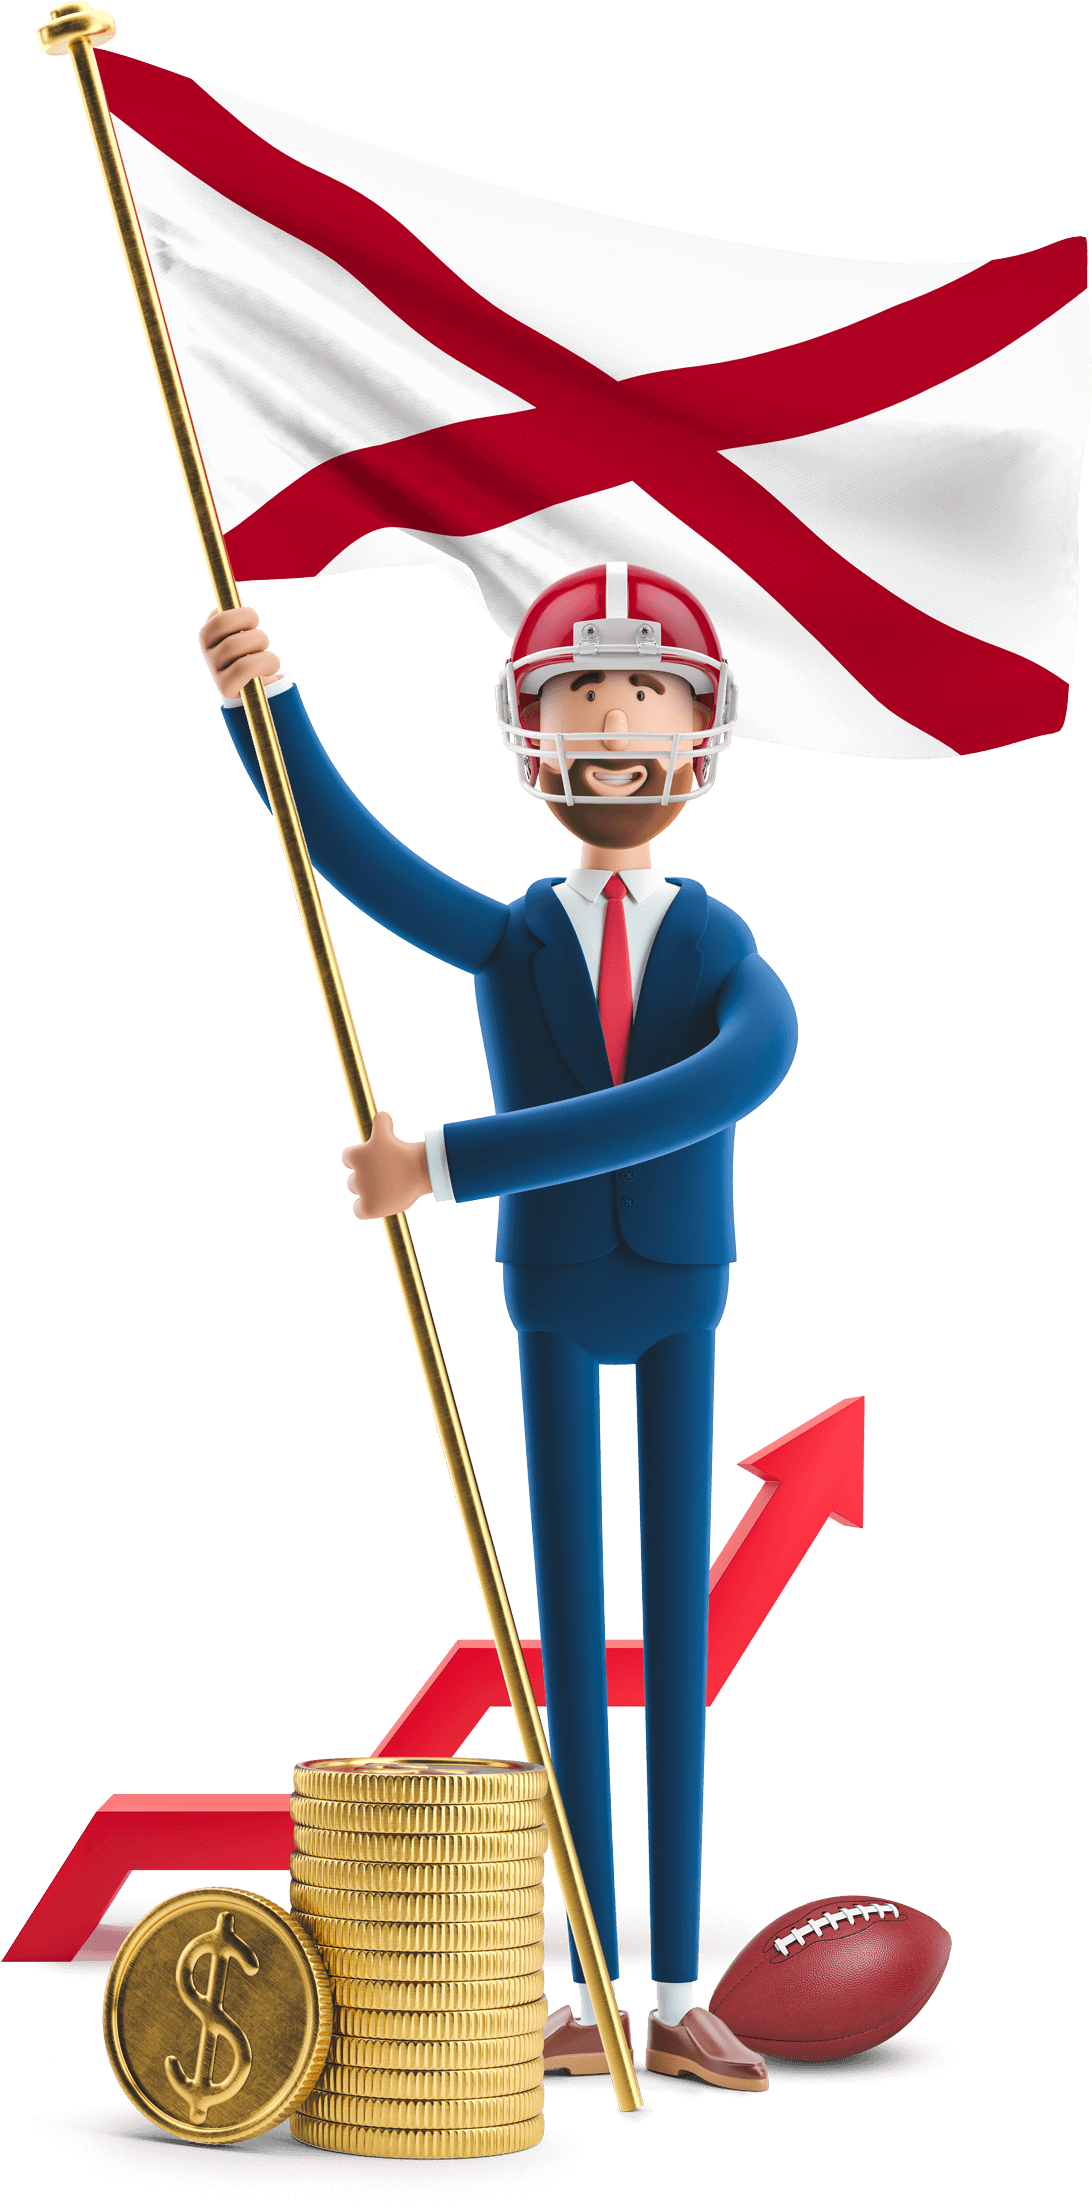 Alabama flag held by MetCredit USA businessman who's wearing a football helmet